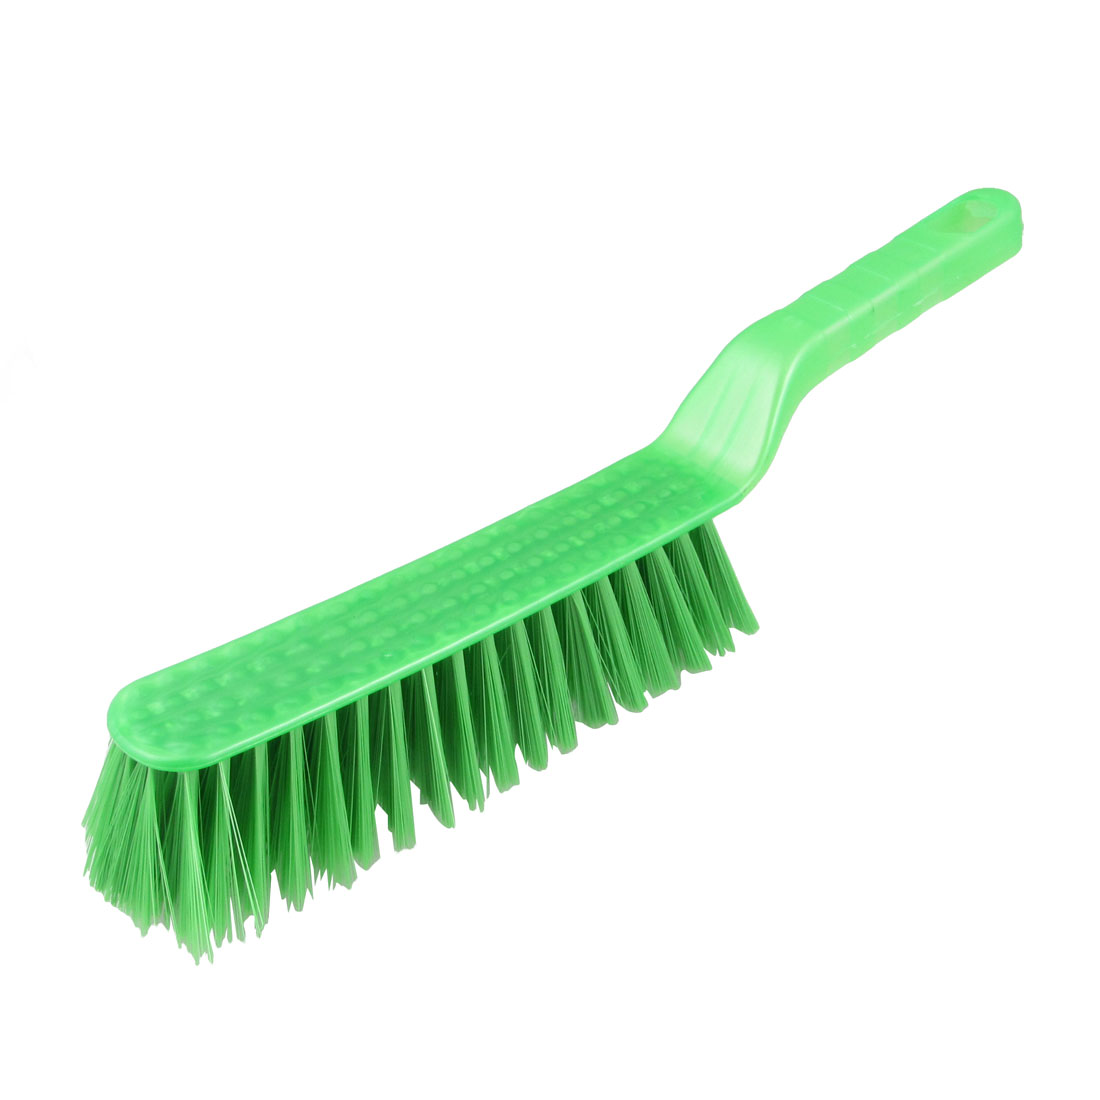 Clothes Shoes Green Plastic Handle Wash Scrubbing Brush 12.6""